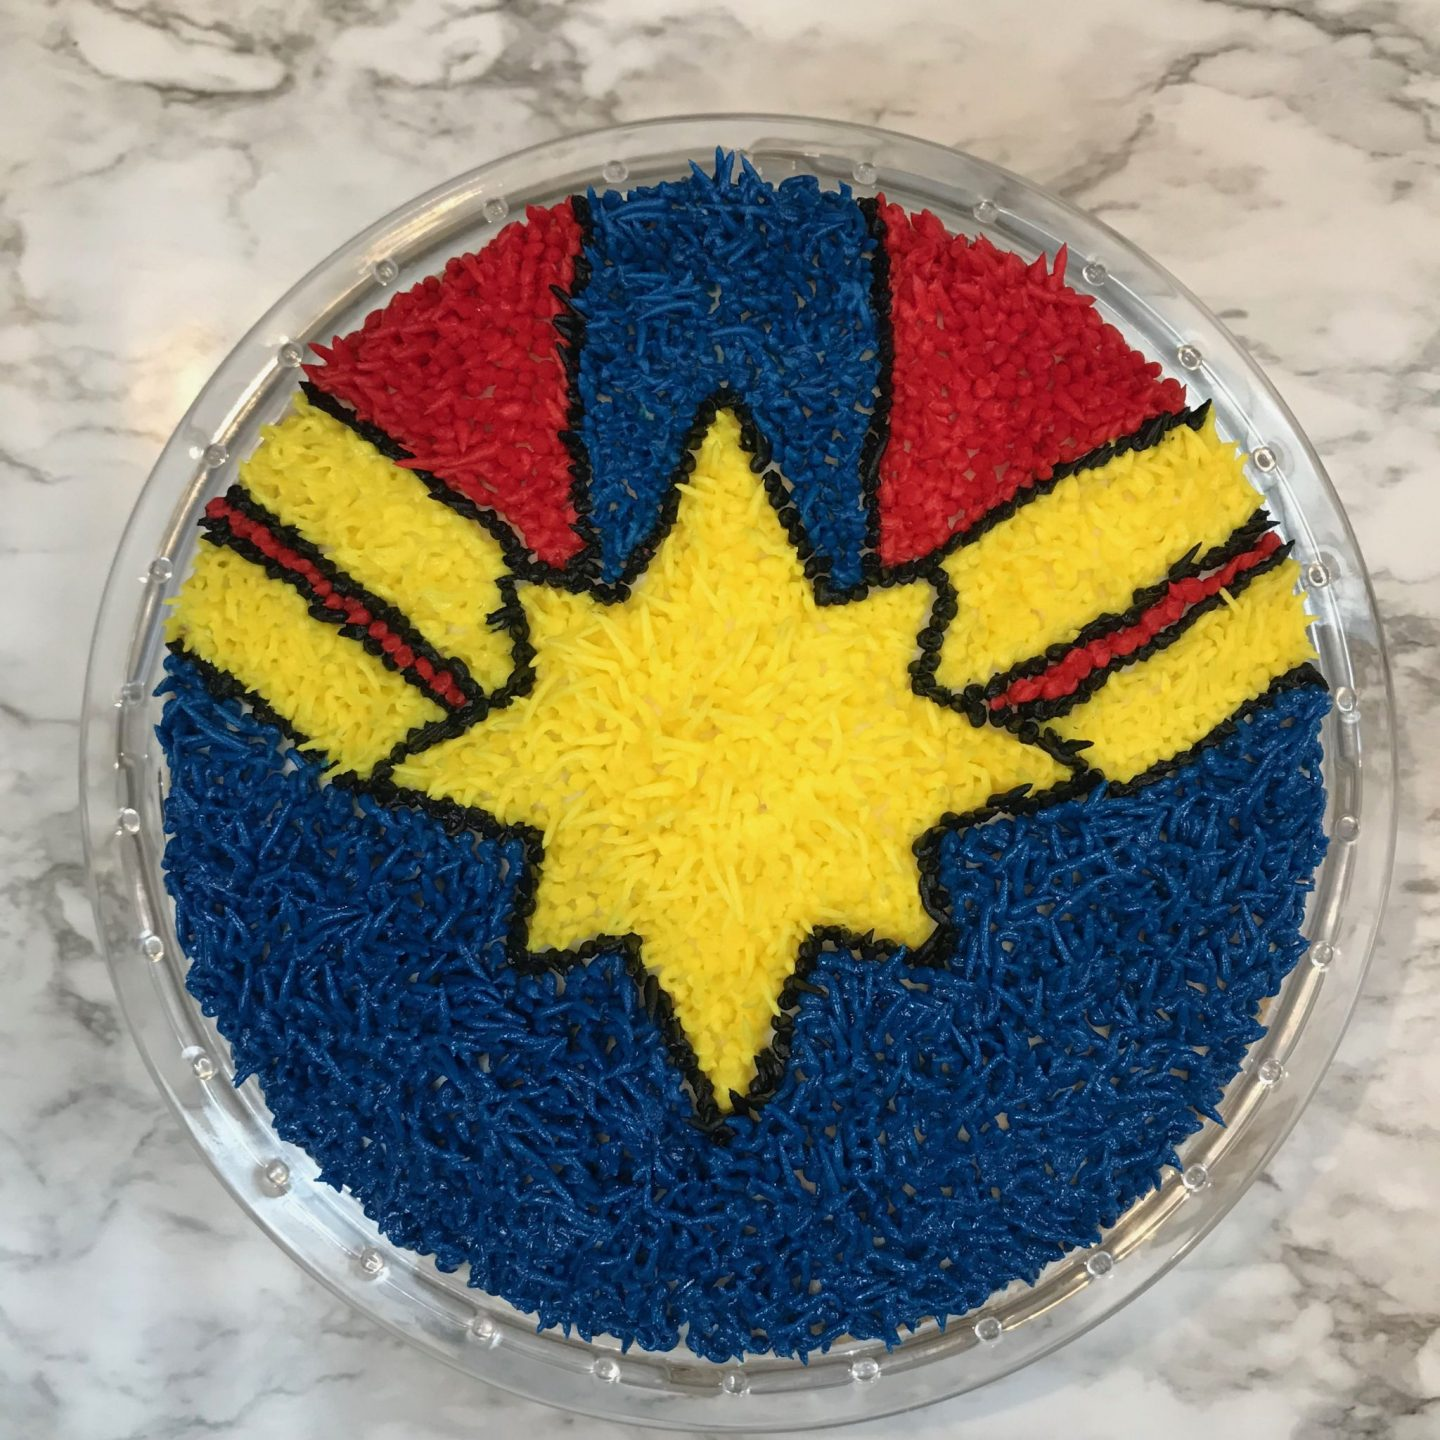 Captain Marvel Shag Rug Cake from Popcorner Reviews